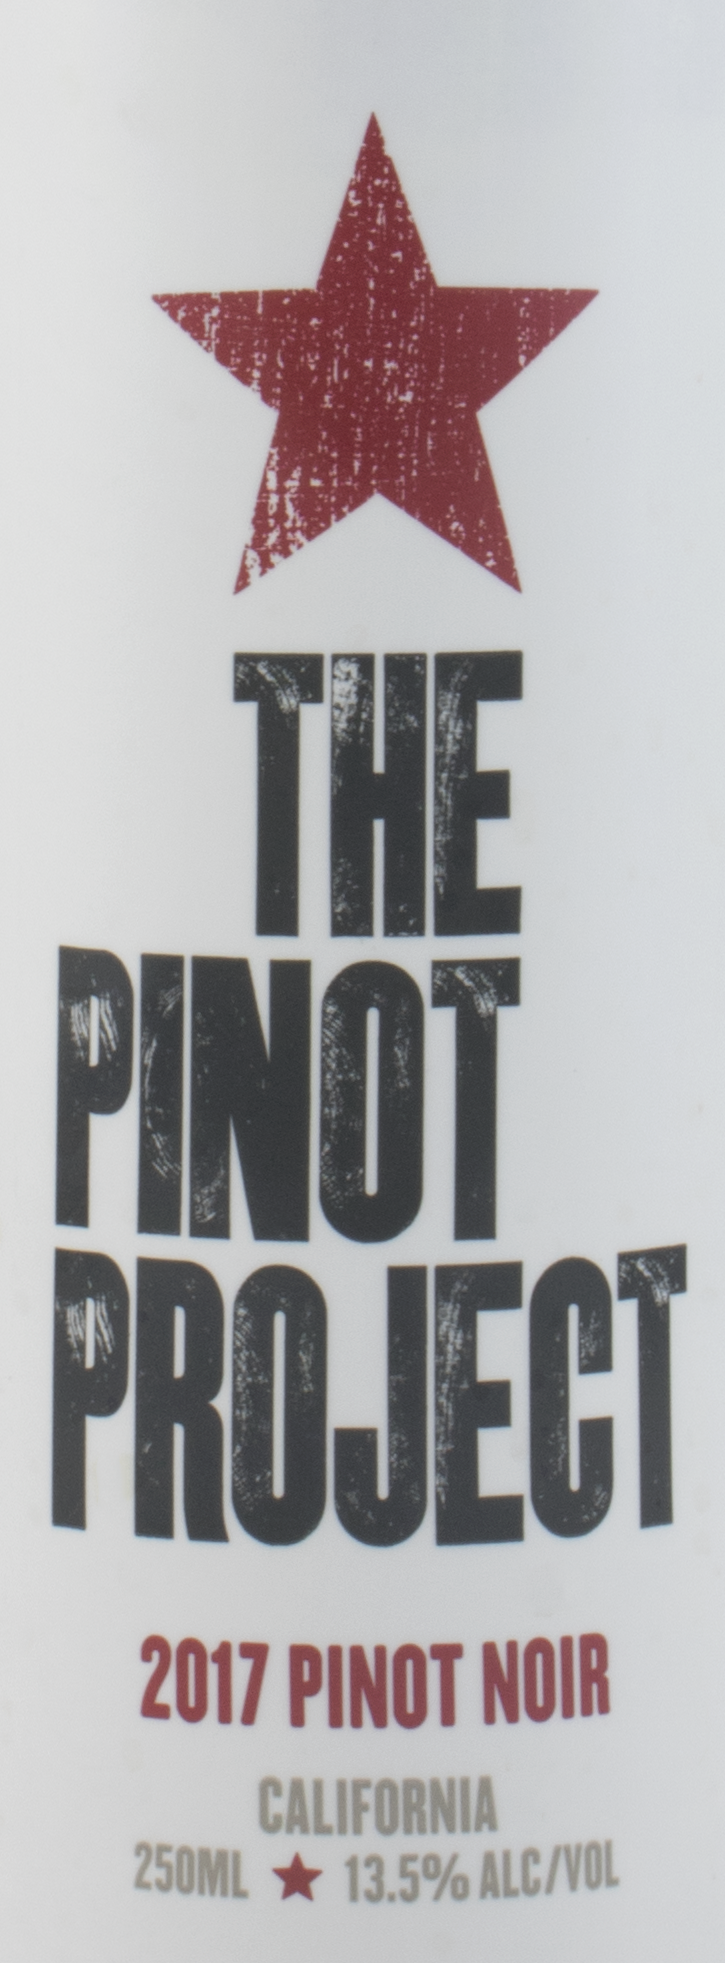 Pinot Project Pinot Noir Can 2017